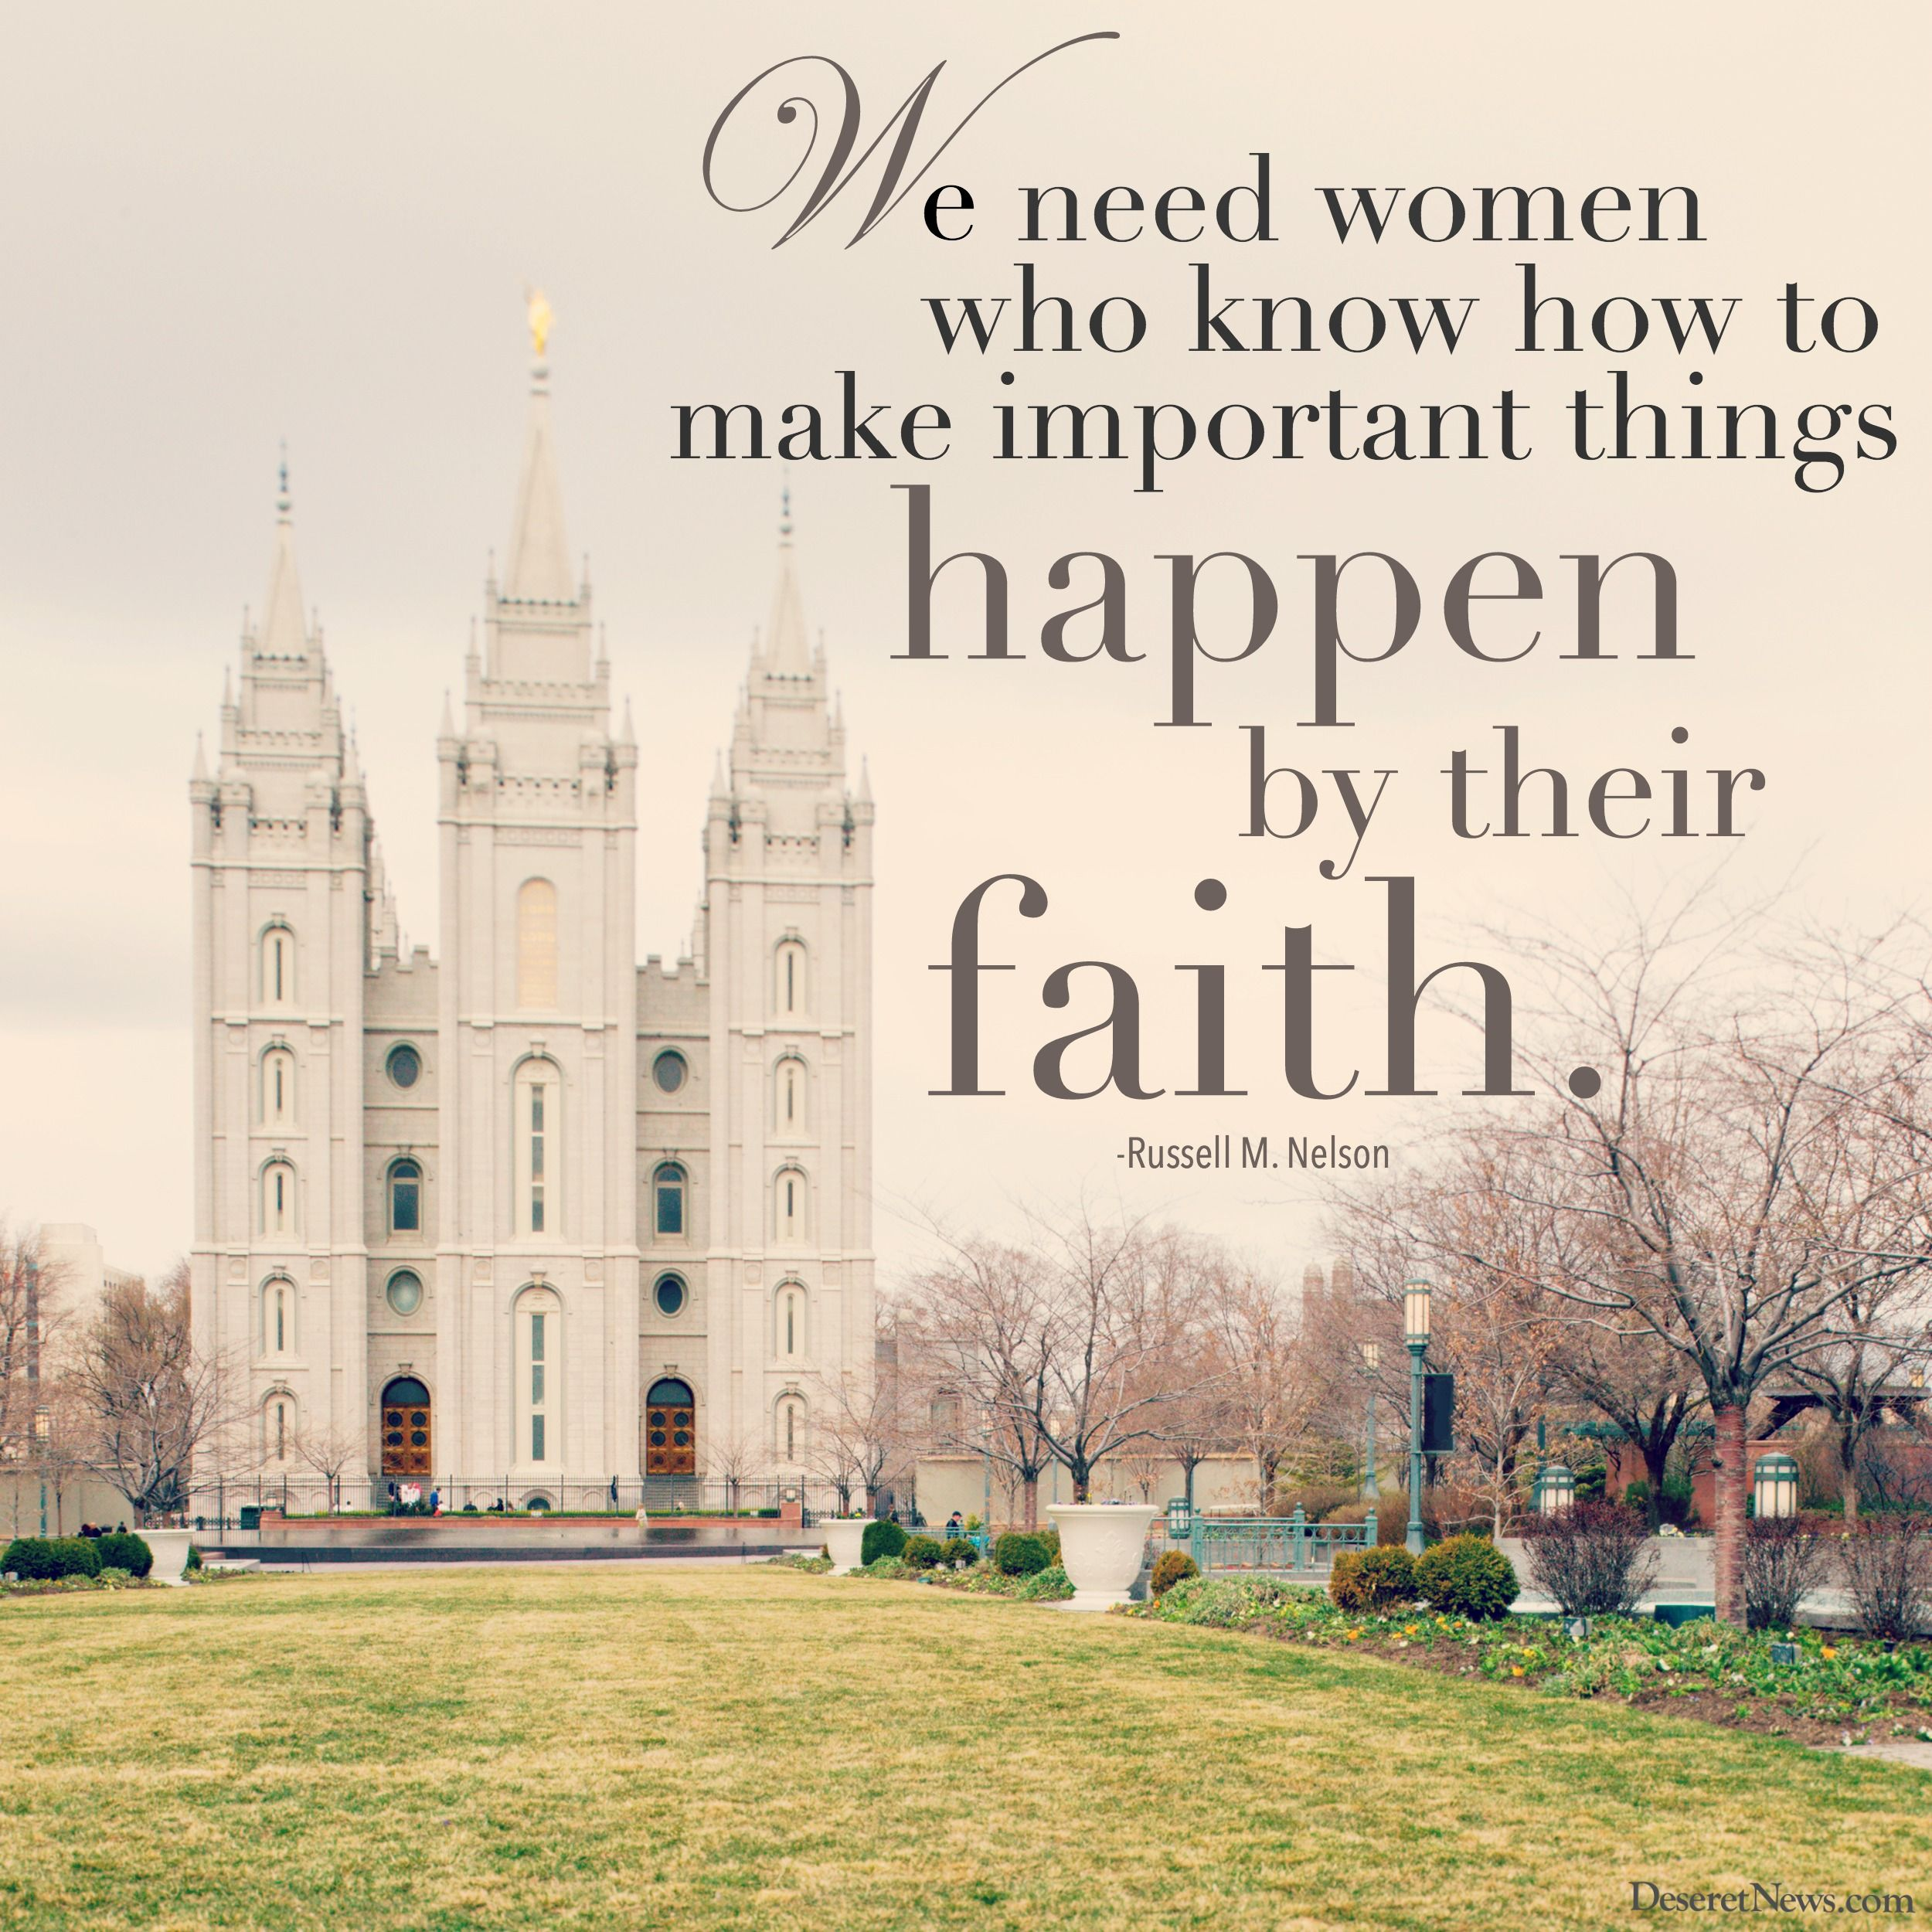 """Quotes On Importance Of Women: President Russell M. Nelson: """"We Need Women Who Know How"""